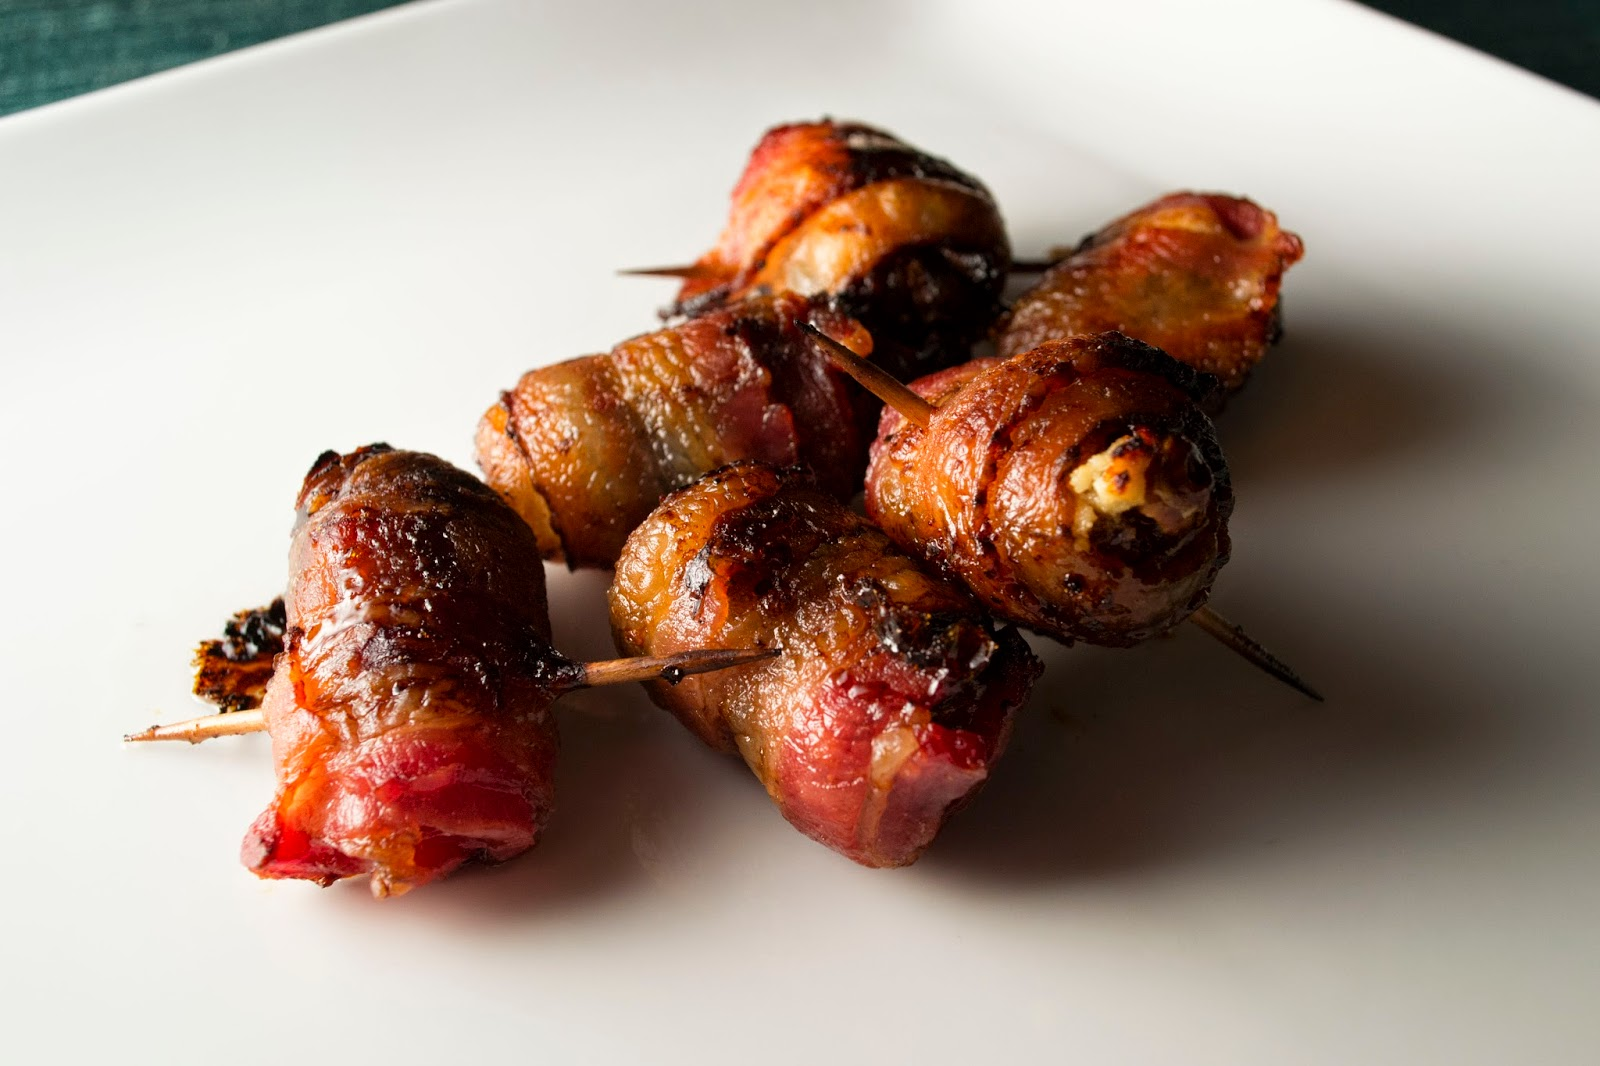 Mangiandobene: Bacon Wrapped Stuffed Dates